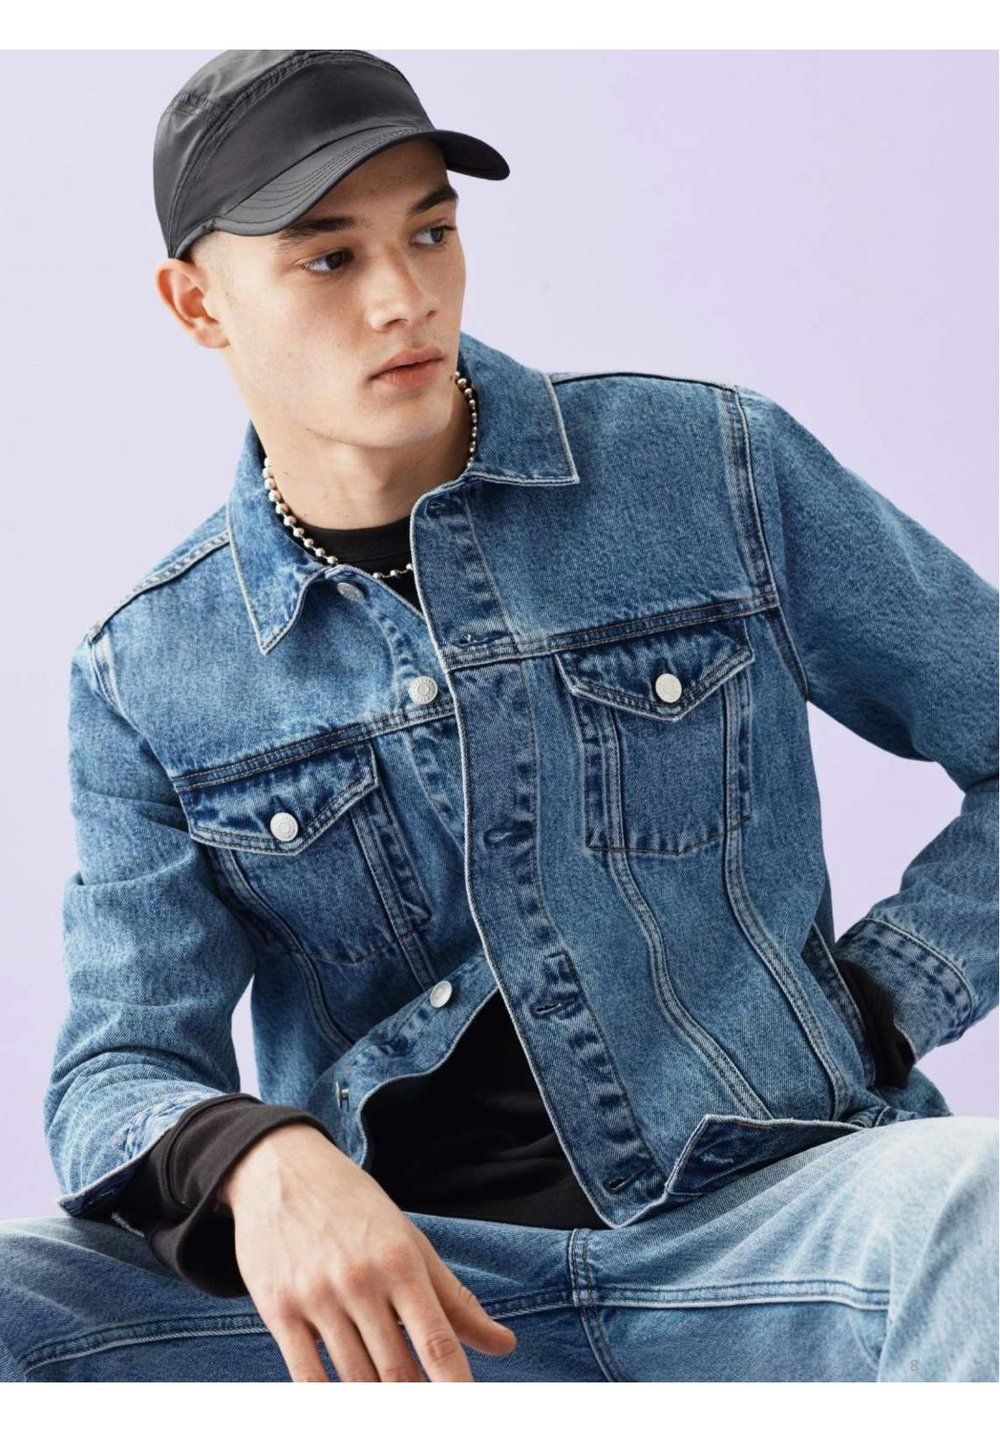 ea_weekday_ss17_lookbook_jean_campaign_low_res-page-009.jpg